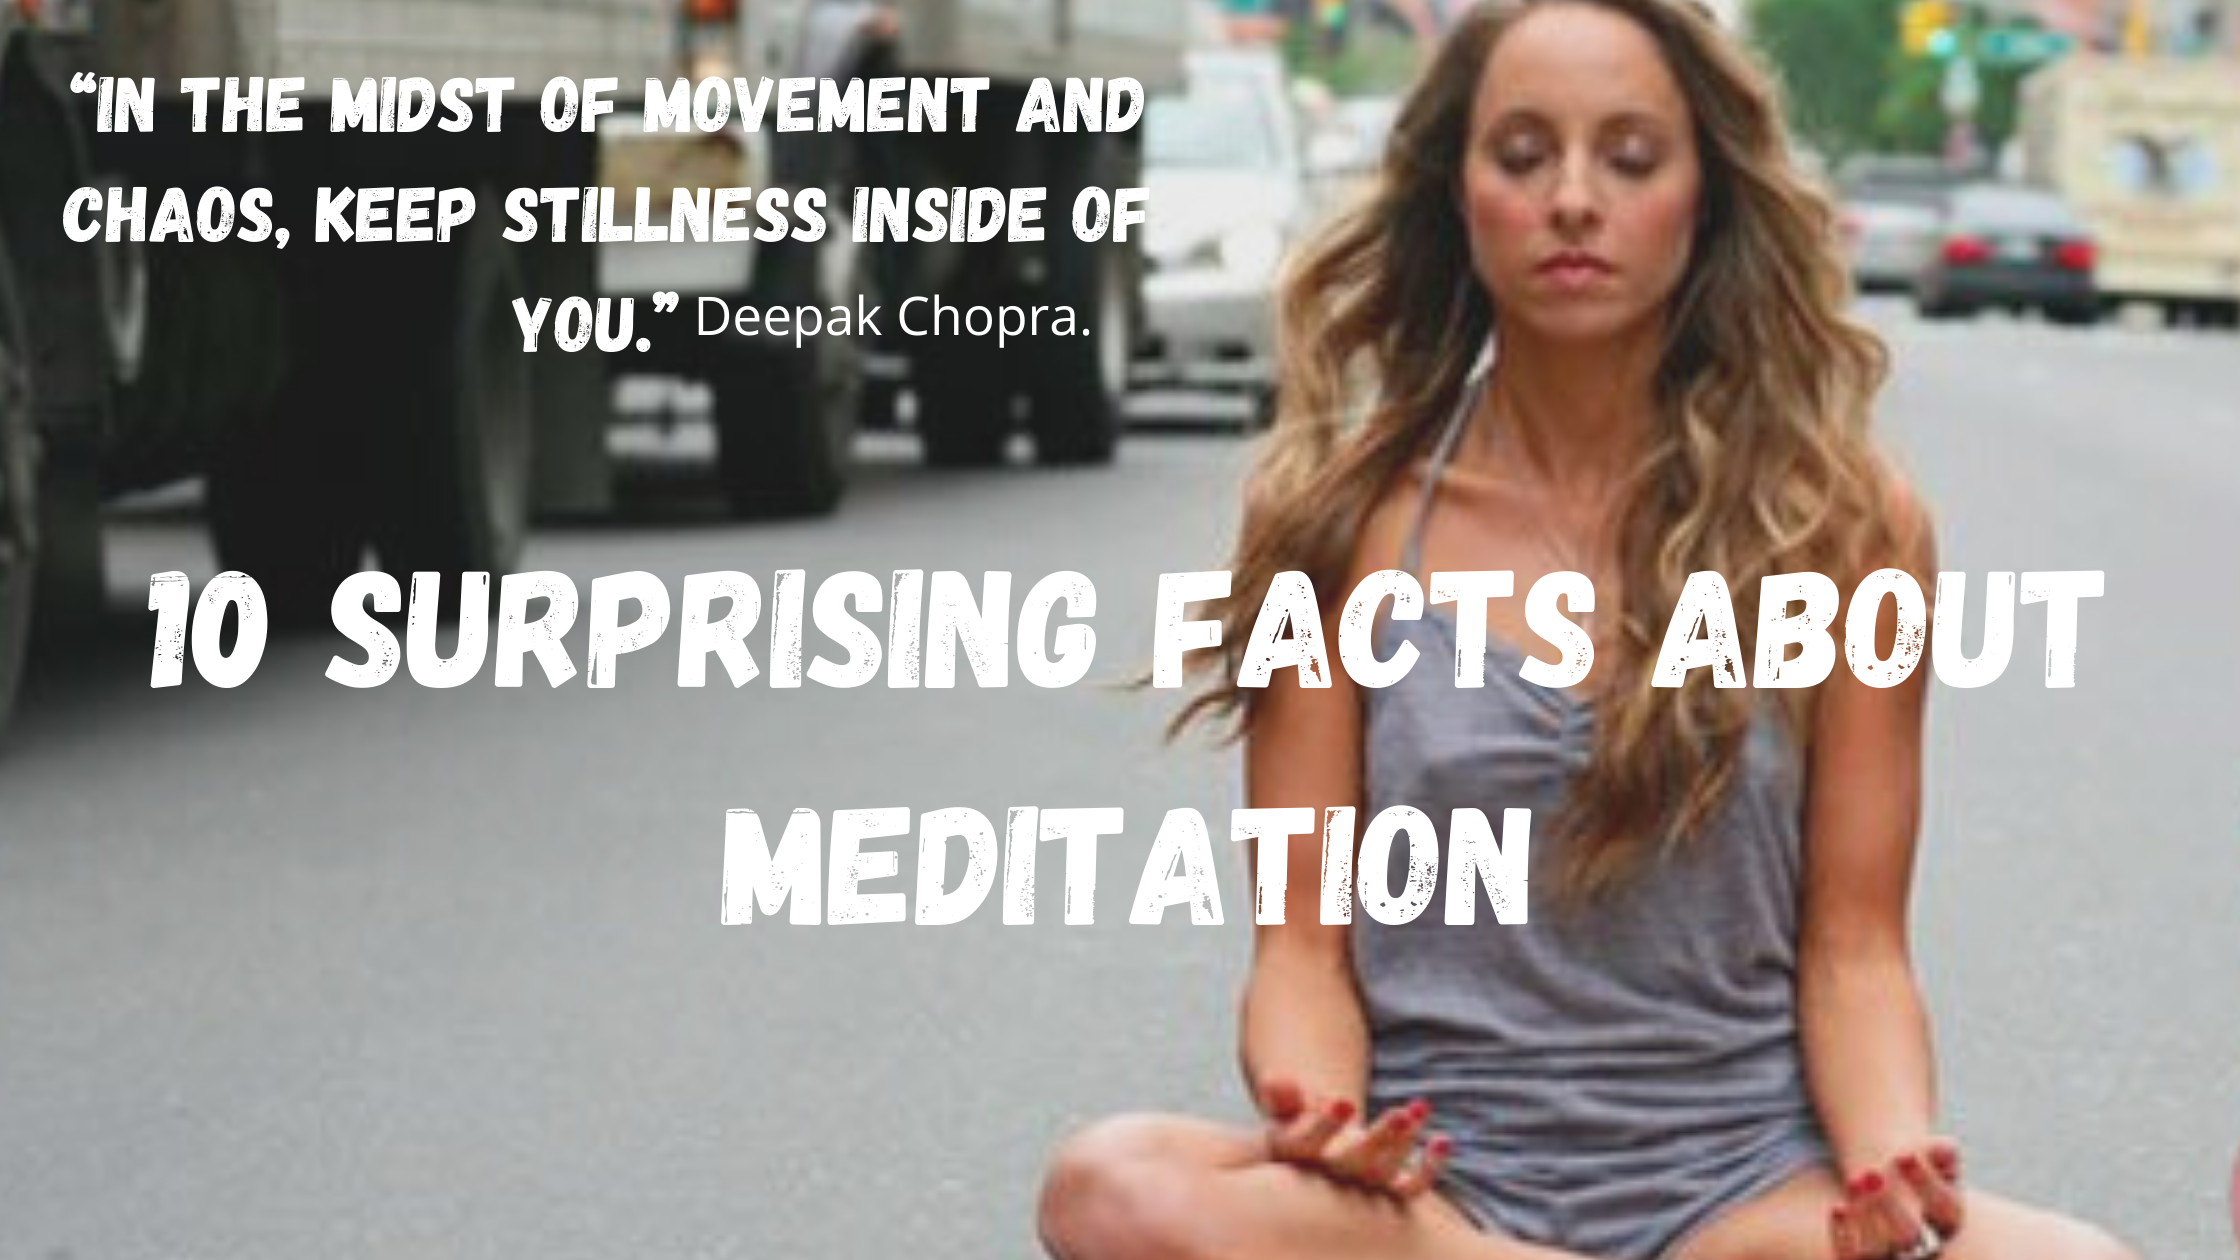 10 Surprising Facts About Meditation